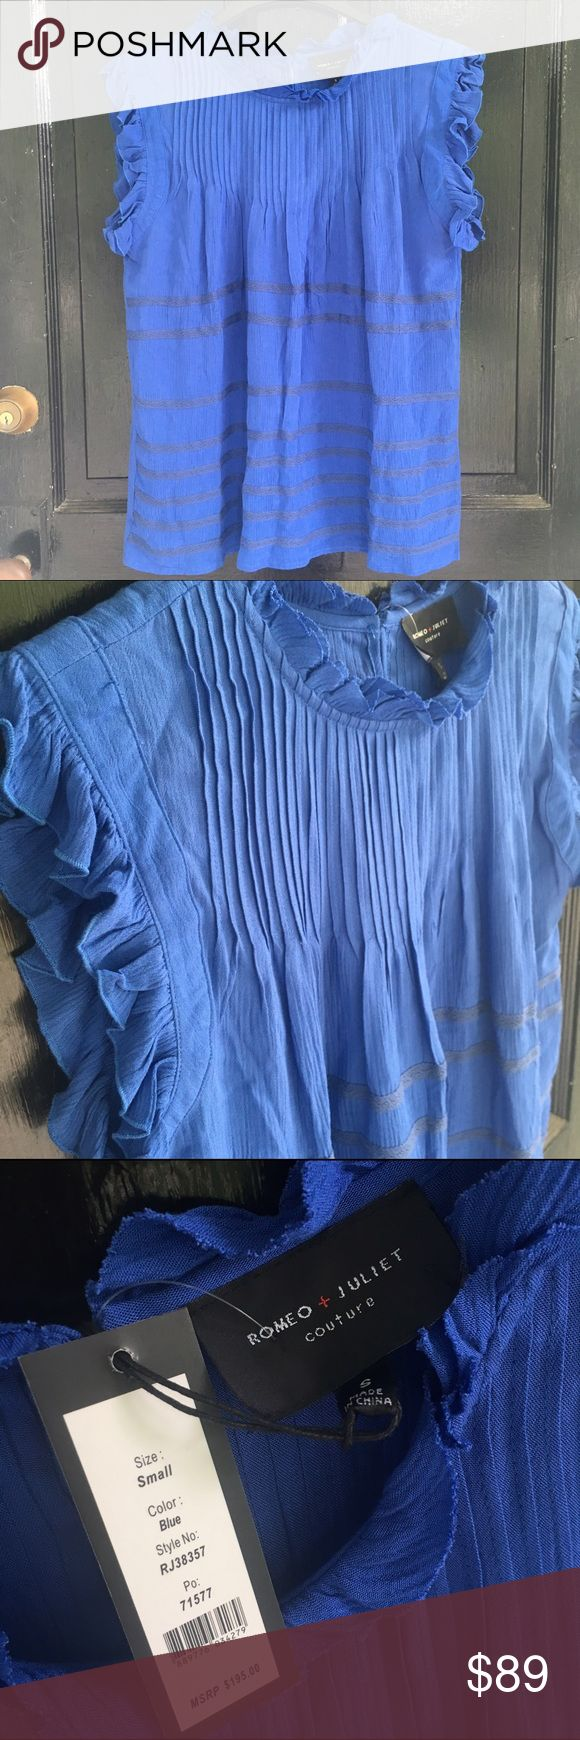 NWT Romeo + Juliet Couture Royal Blue top Super Feminine blue top with small ruffle and tucking and trim details. Also has 5 buttons on the back closure. 100% Rayon Romeo & Juliet Couture Tops Blouses